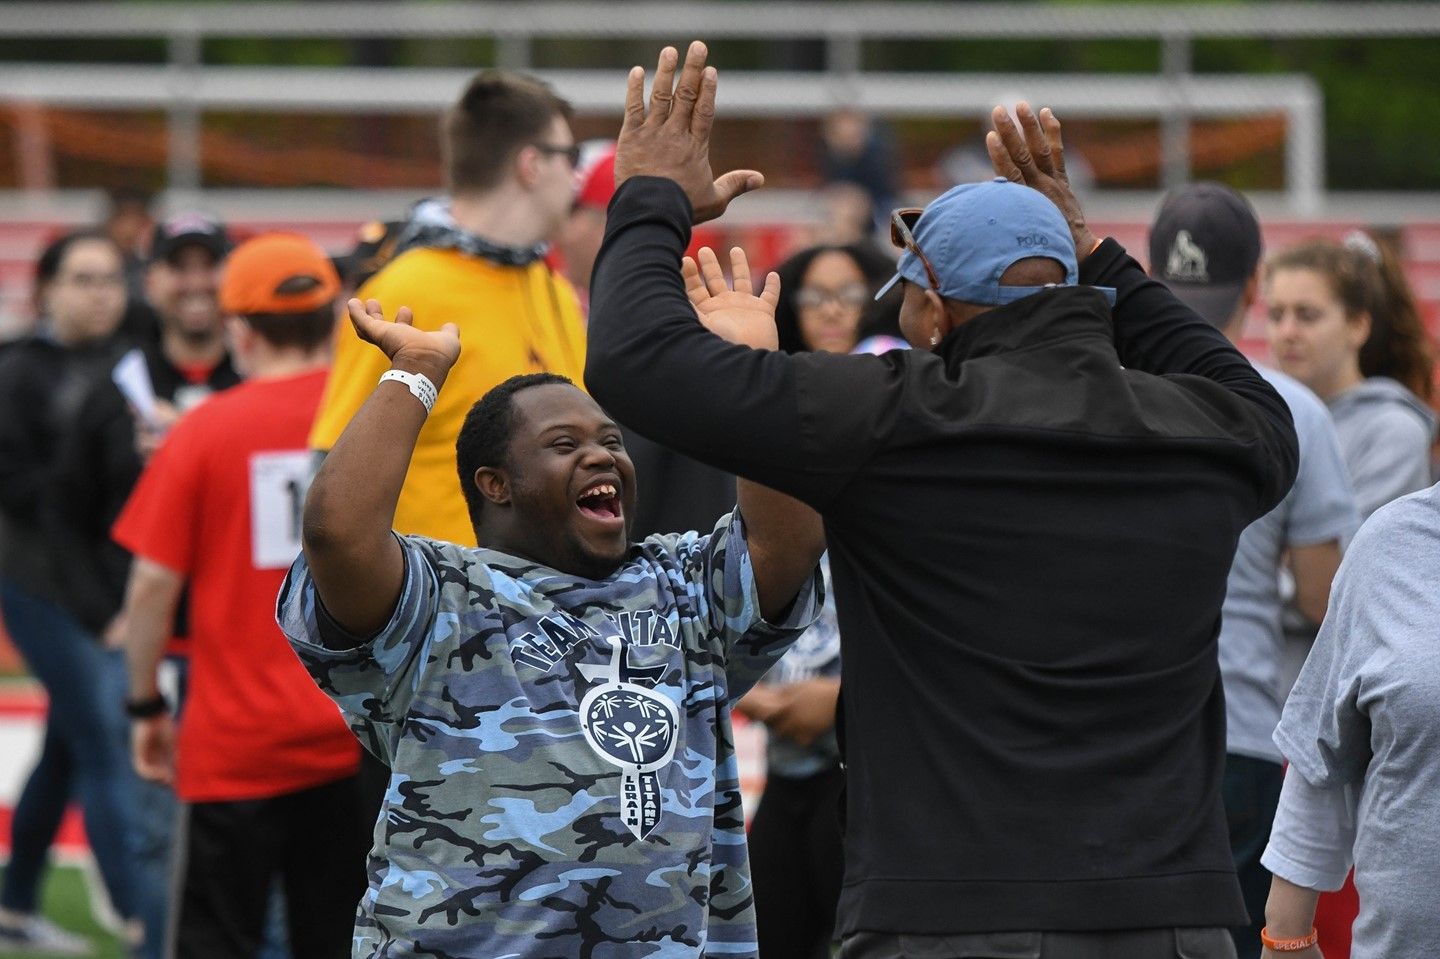 A scholar and staff member celebrate during the Special Olympics